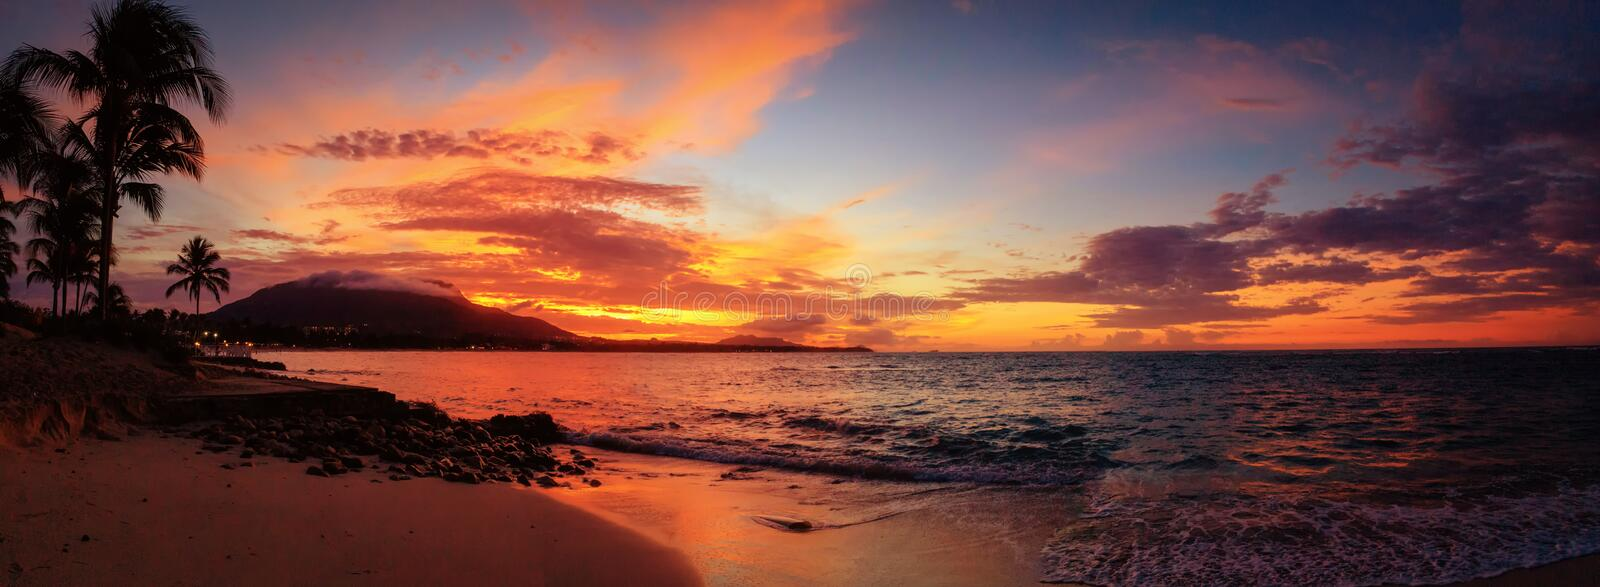 Red sunset panorama on the Caribbean beach with palm trees. Puerto Plata, Dominican Republic, Caribbean stock image